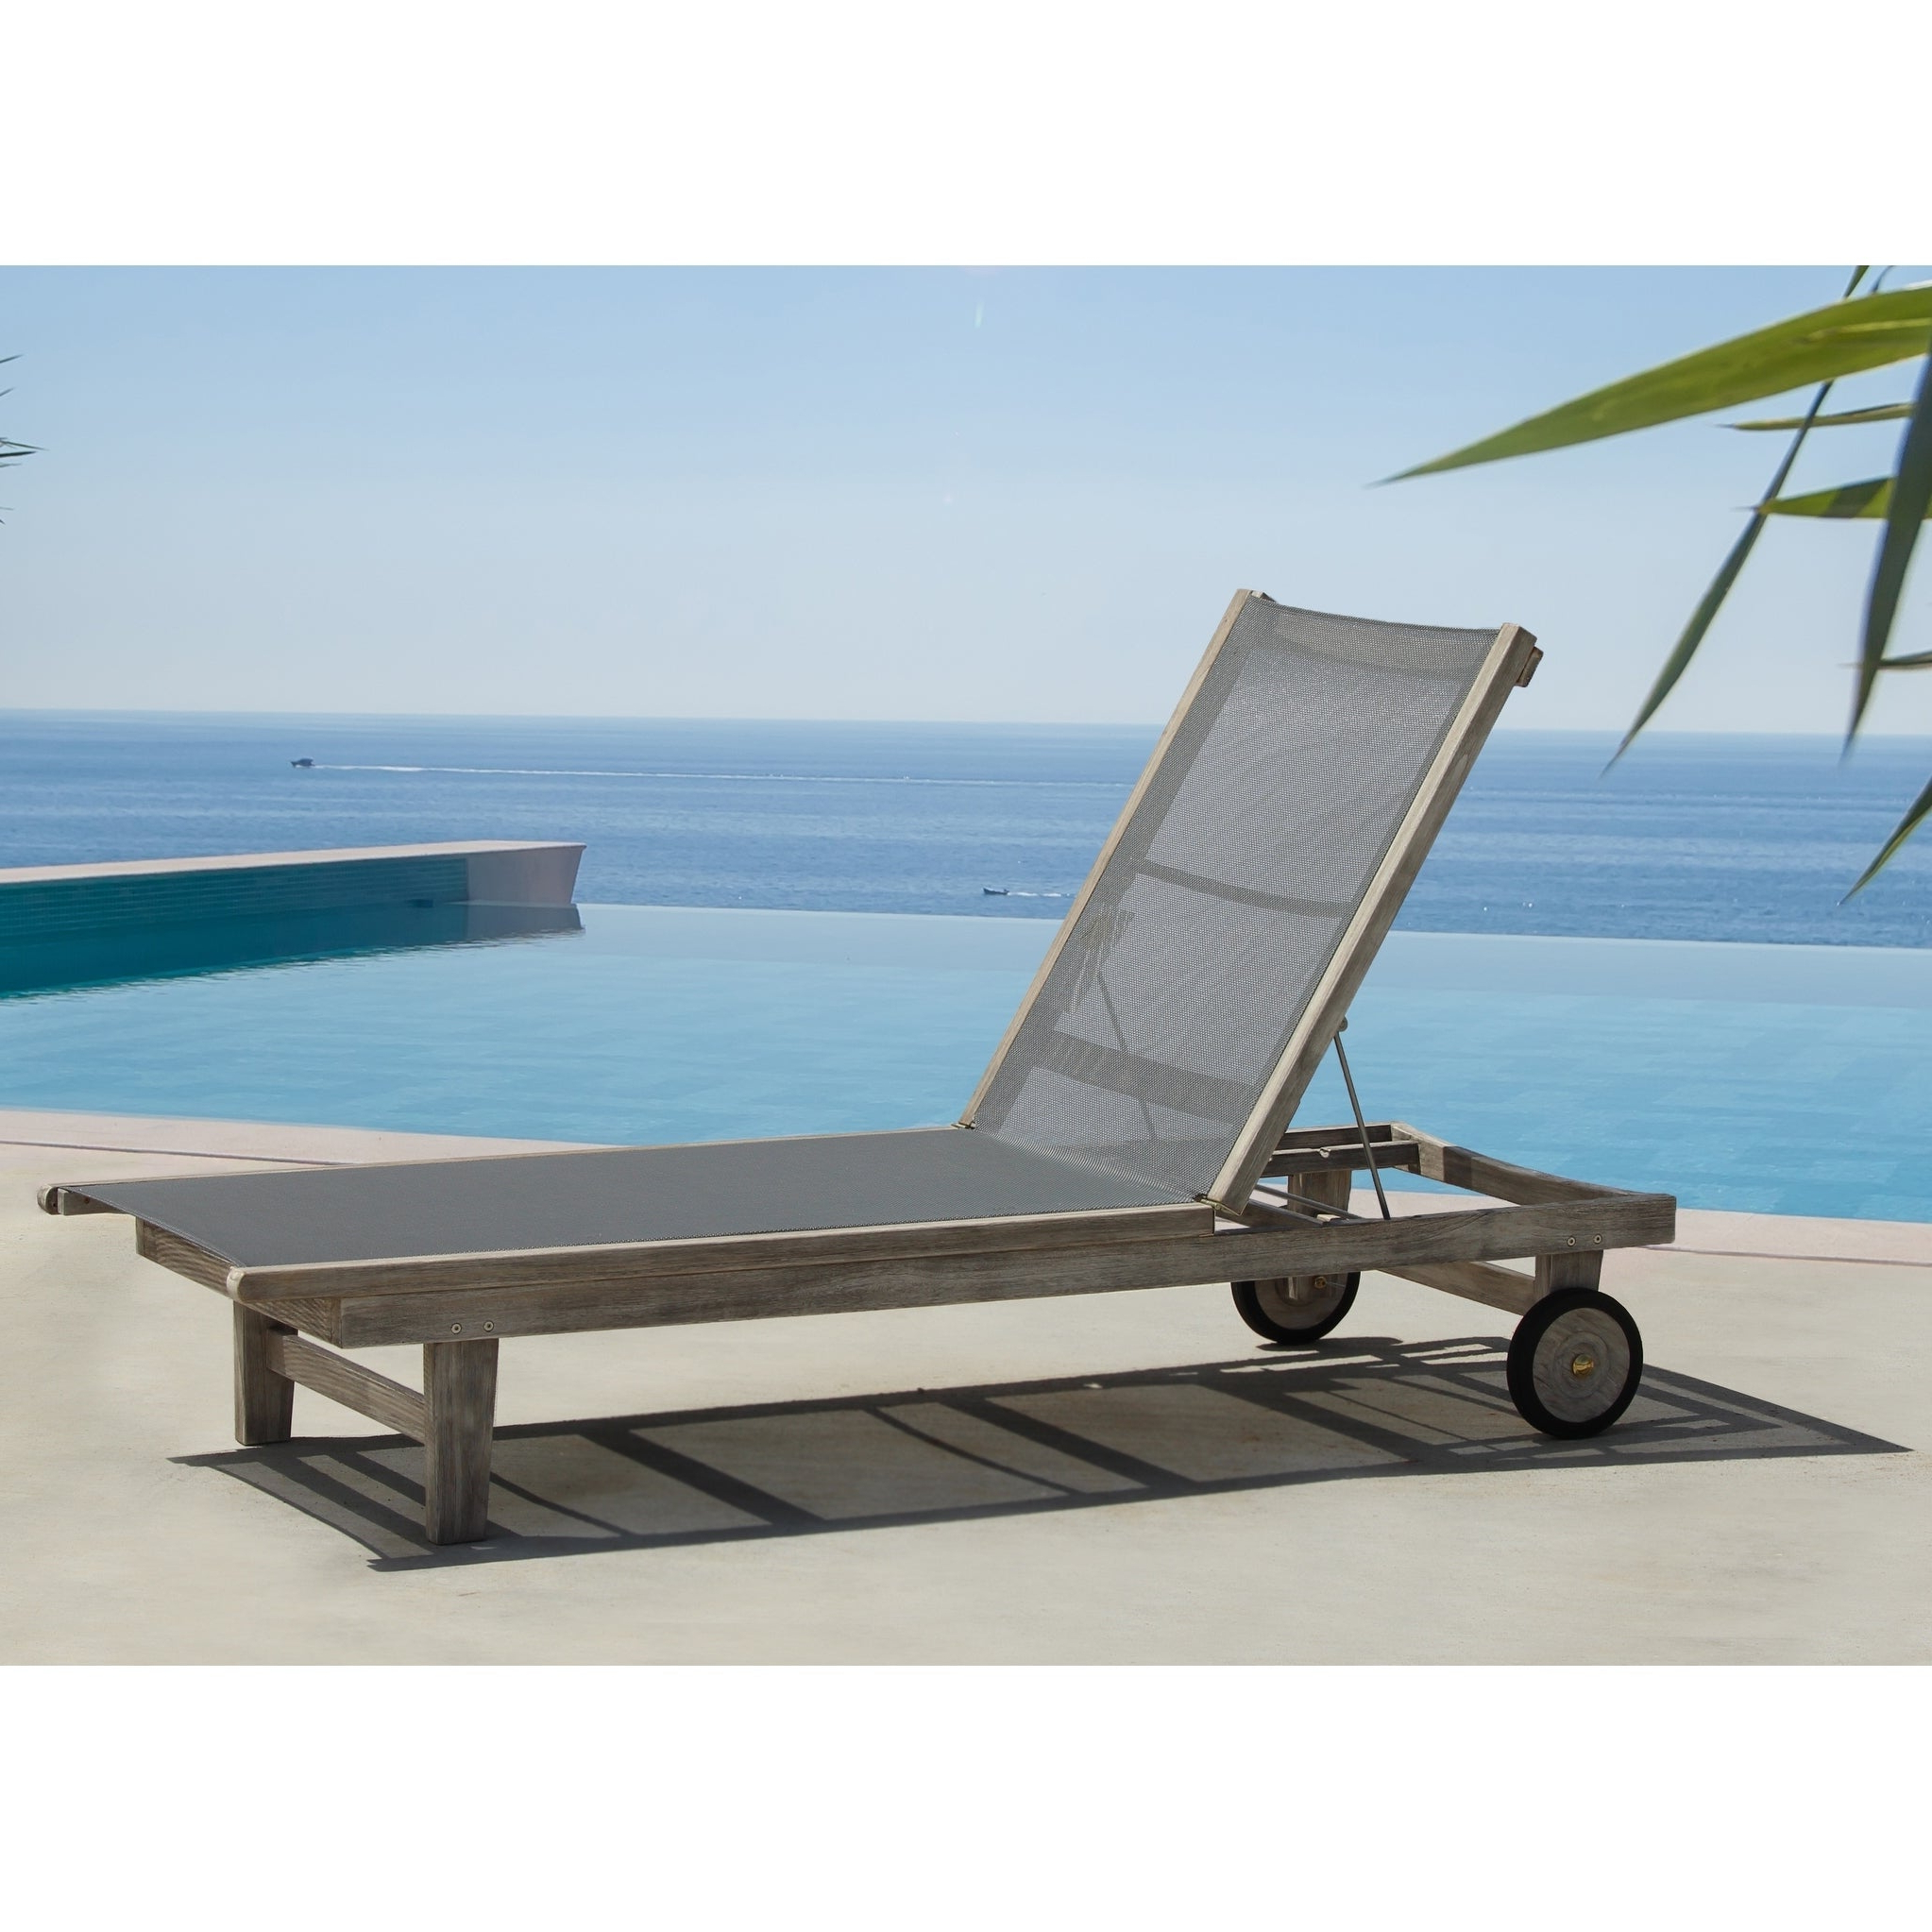 Havenside Home Surfside Outdoor Lounge Chairs Pertaining To Fashionable Details About Havenside Home Surfside Driftwood Grey Teak Deck Lounge Grey (View 12 of 25)